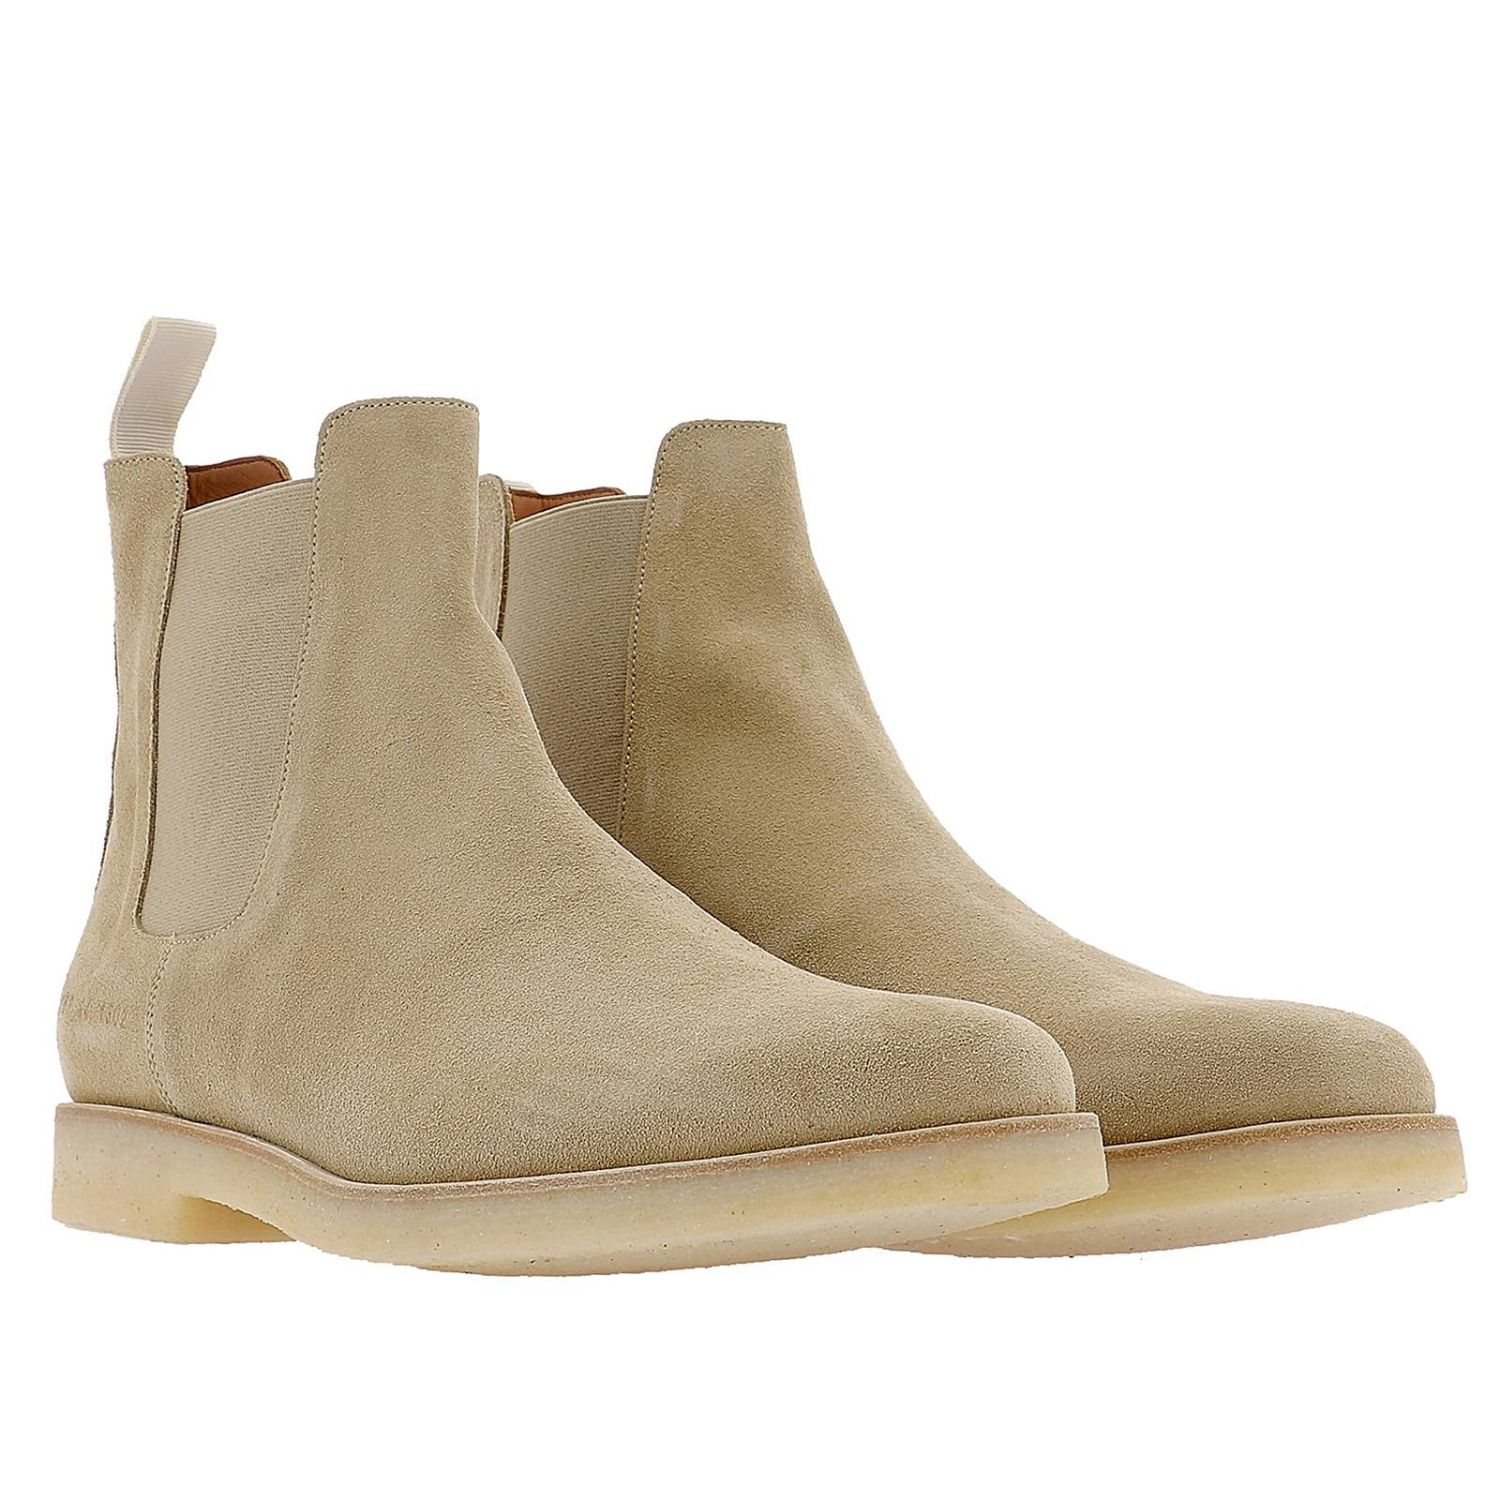 Zapatos hombre Common Projects beige 2